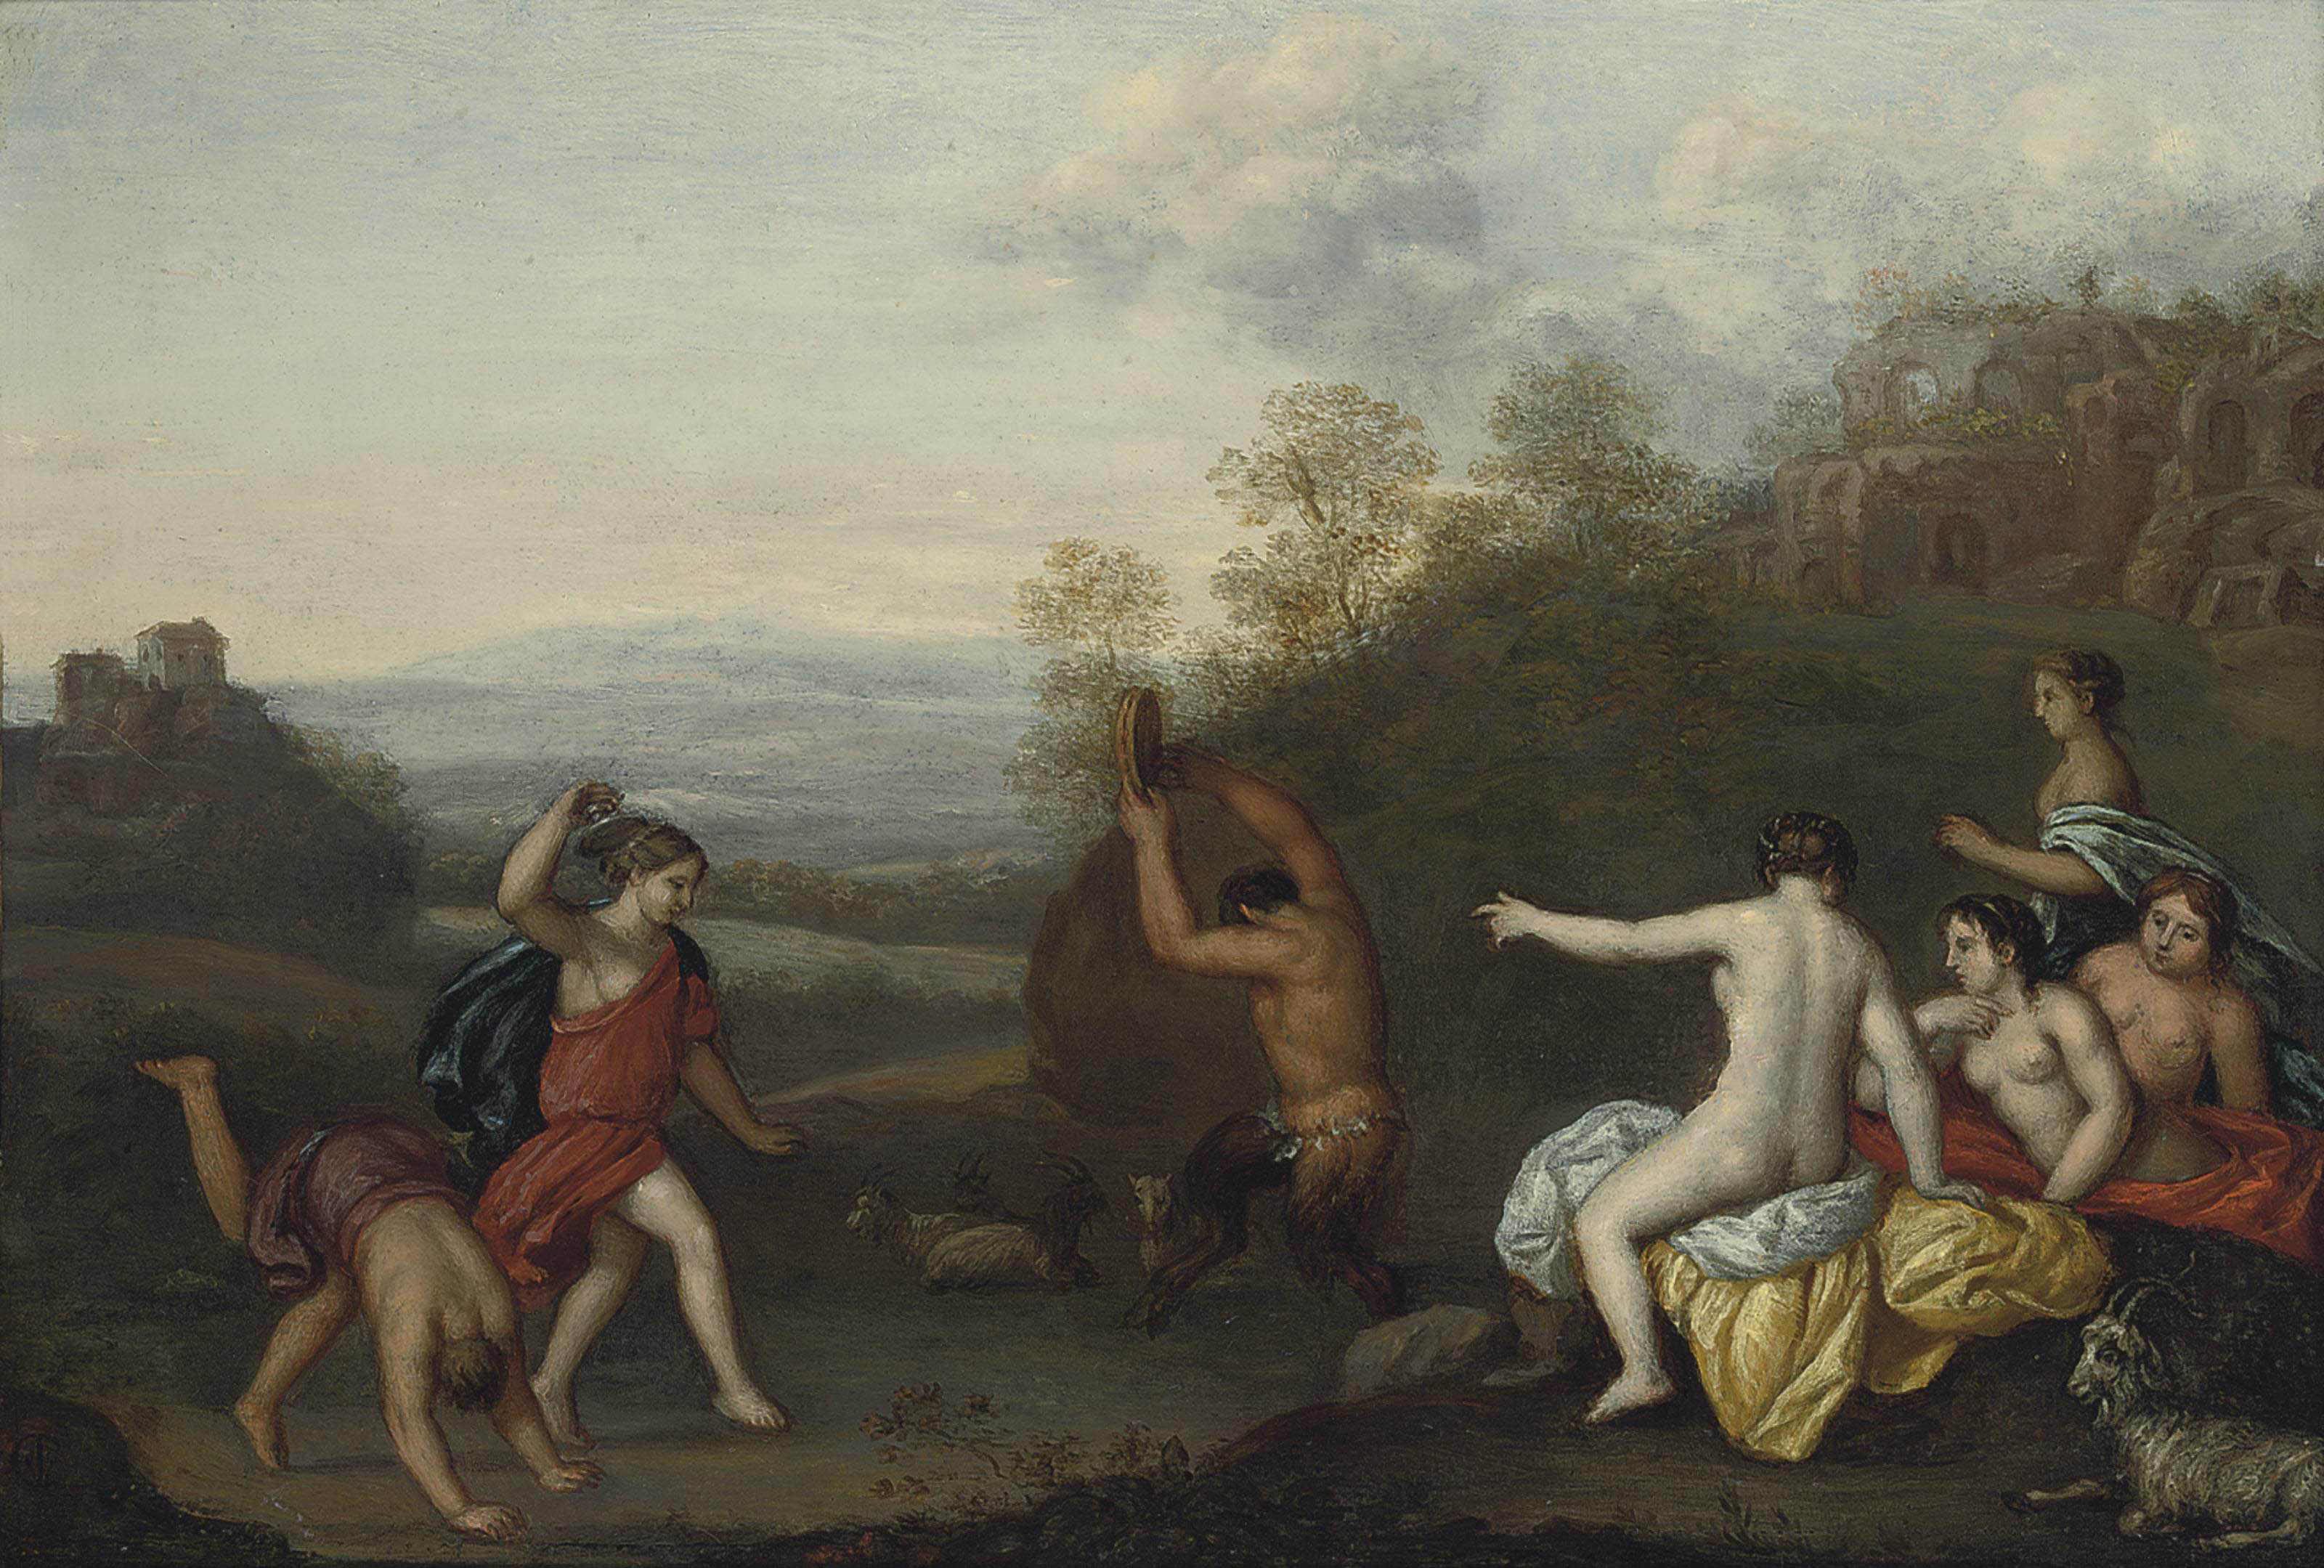 Nymphs and a Satyr dancing in a landscape, ruins beyond